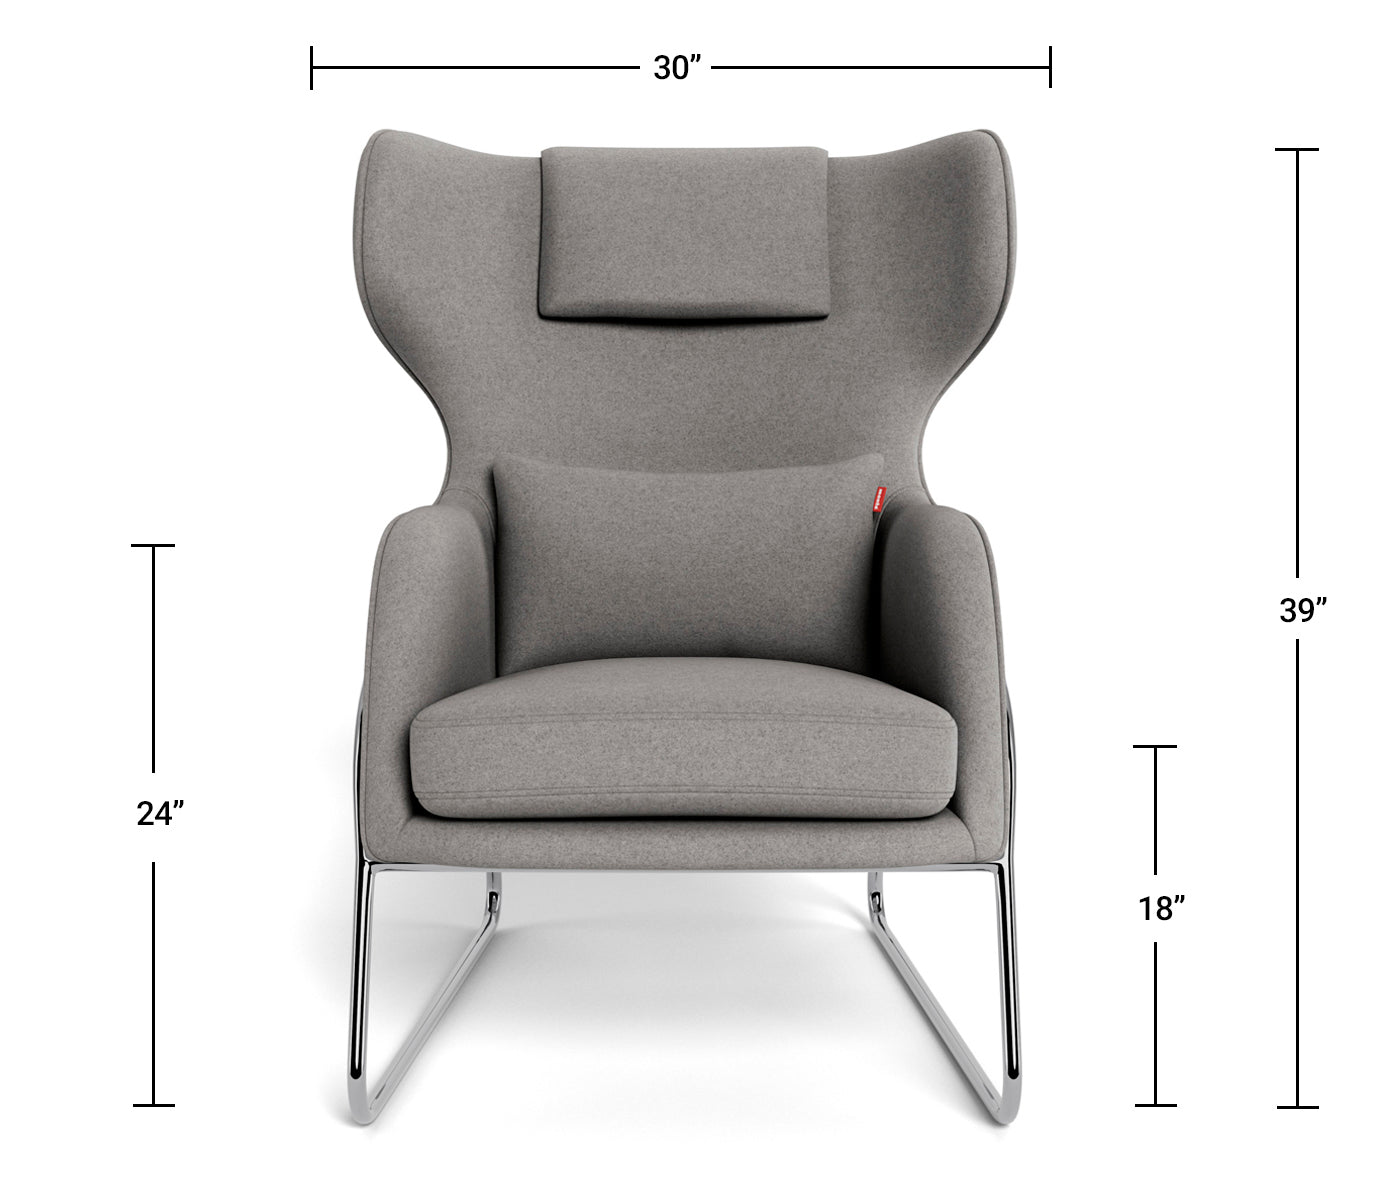 Modern Lounge Chair - Grand Jackson Lounge Dimensions Front View